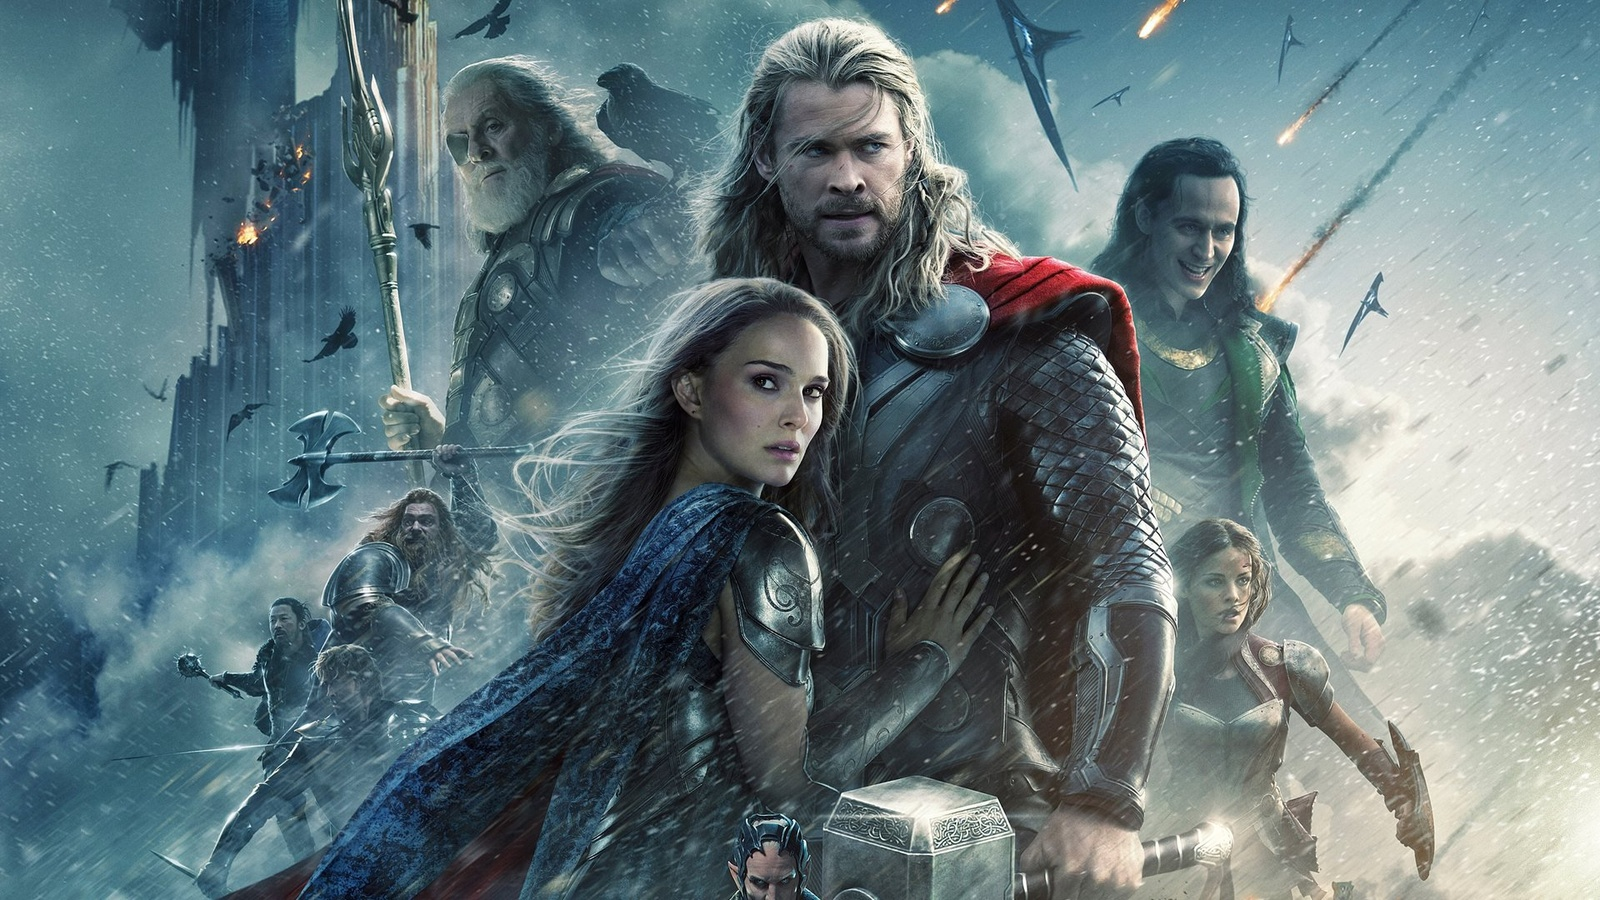 Тор 2: Царство тьмы / Thor: The Dark World background